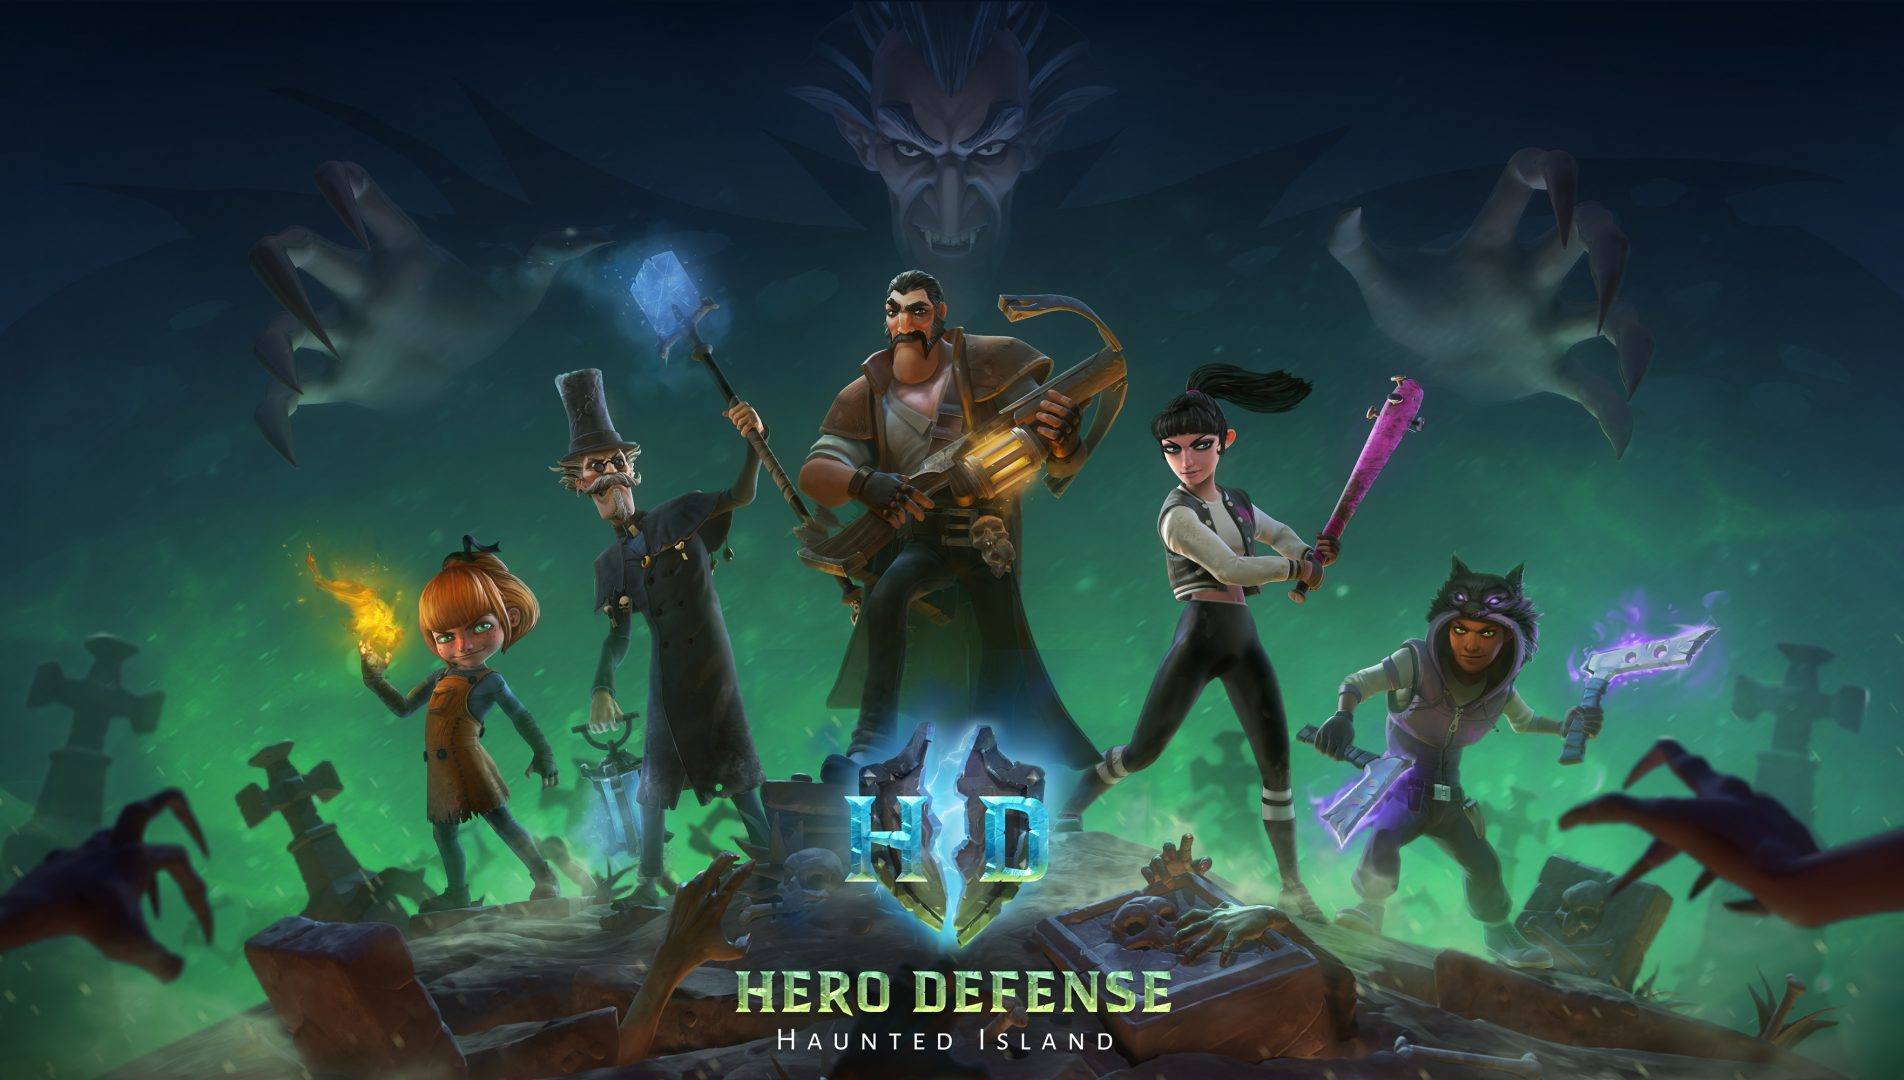 Hero Defense: Haunted Island Now Available Via Early Access